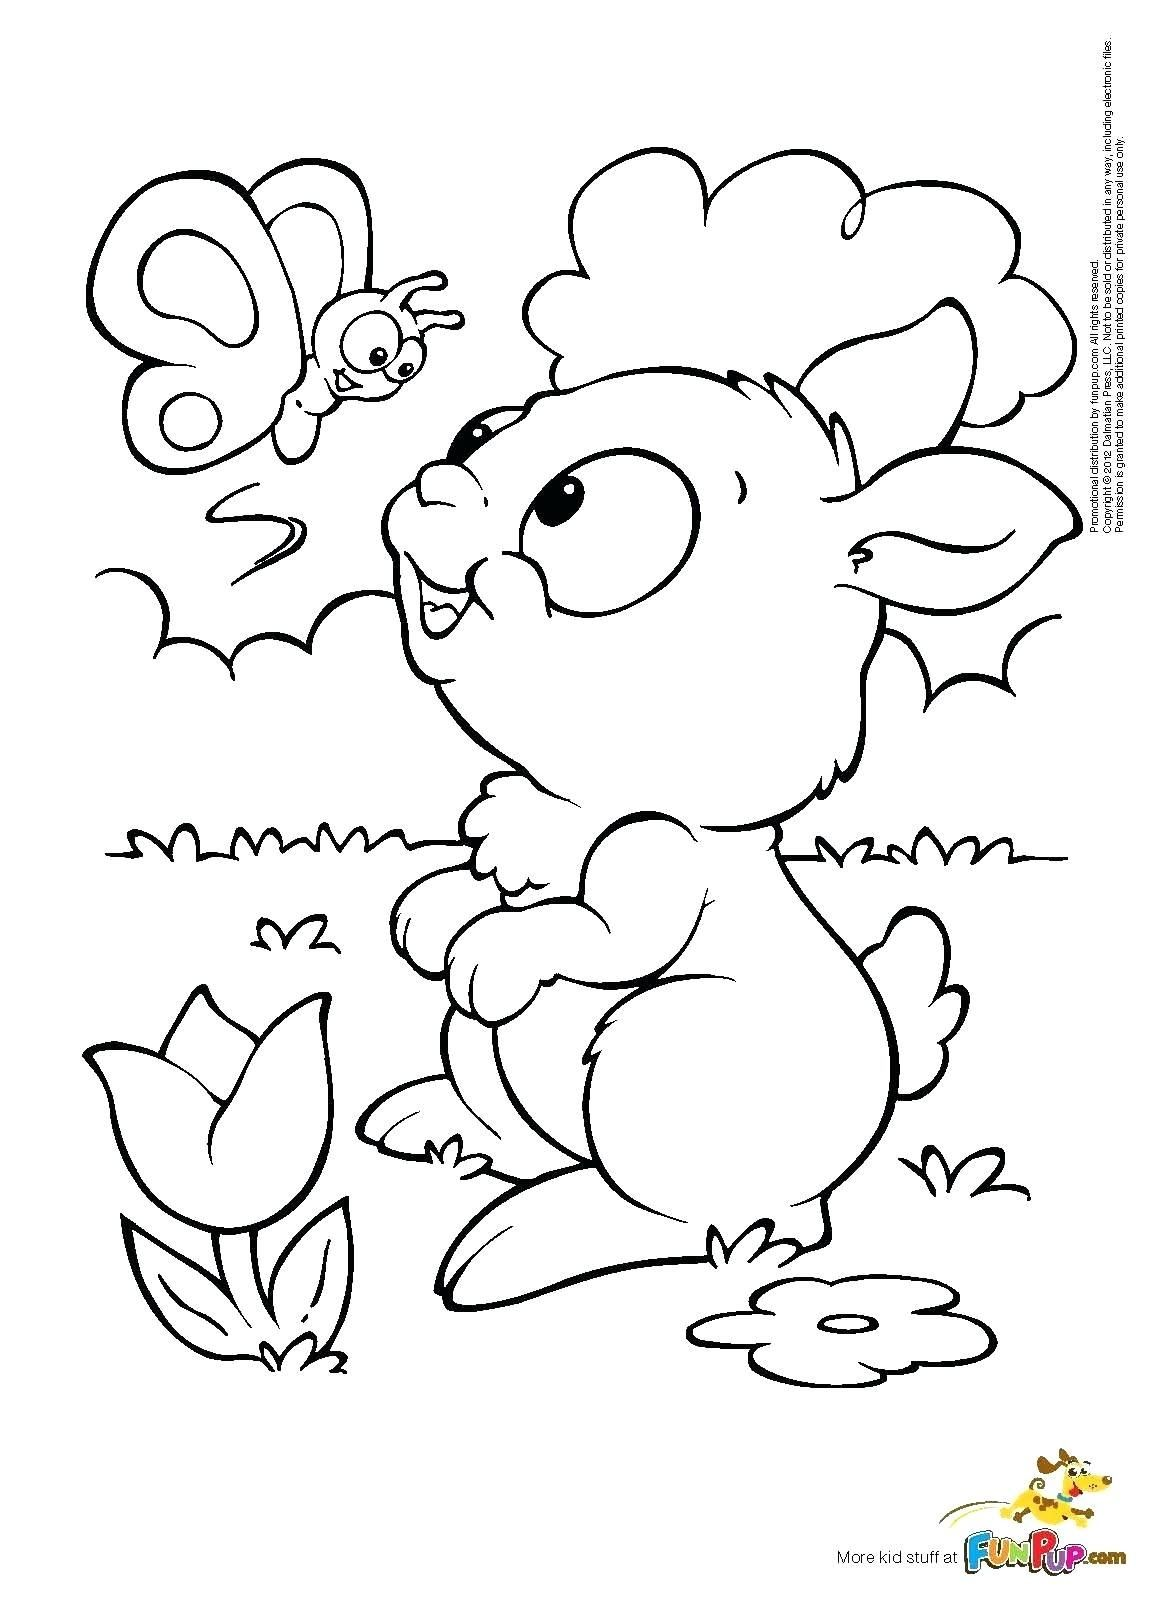 8 March Coloring Pages Owl Coloring Pages Bunny Coloring Pages Coloring Pages